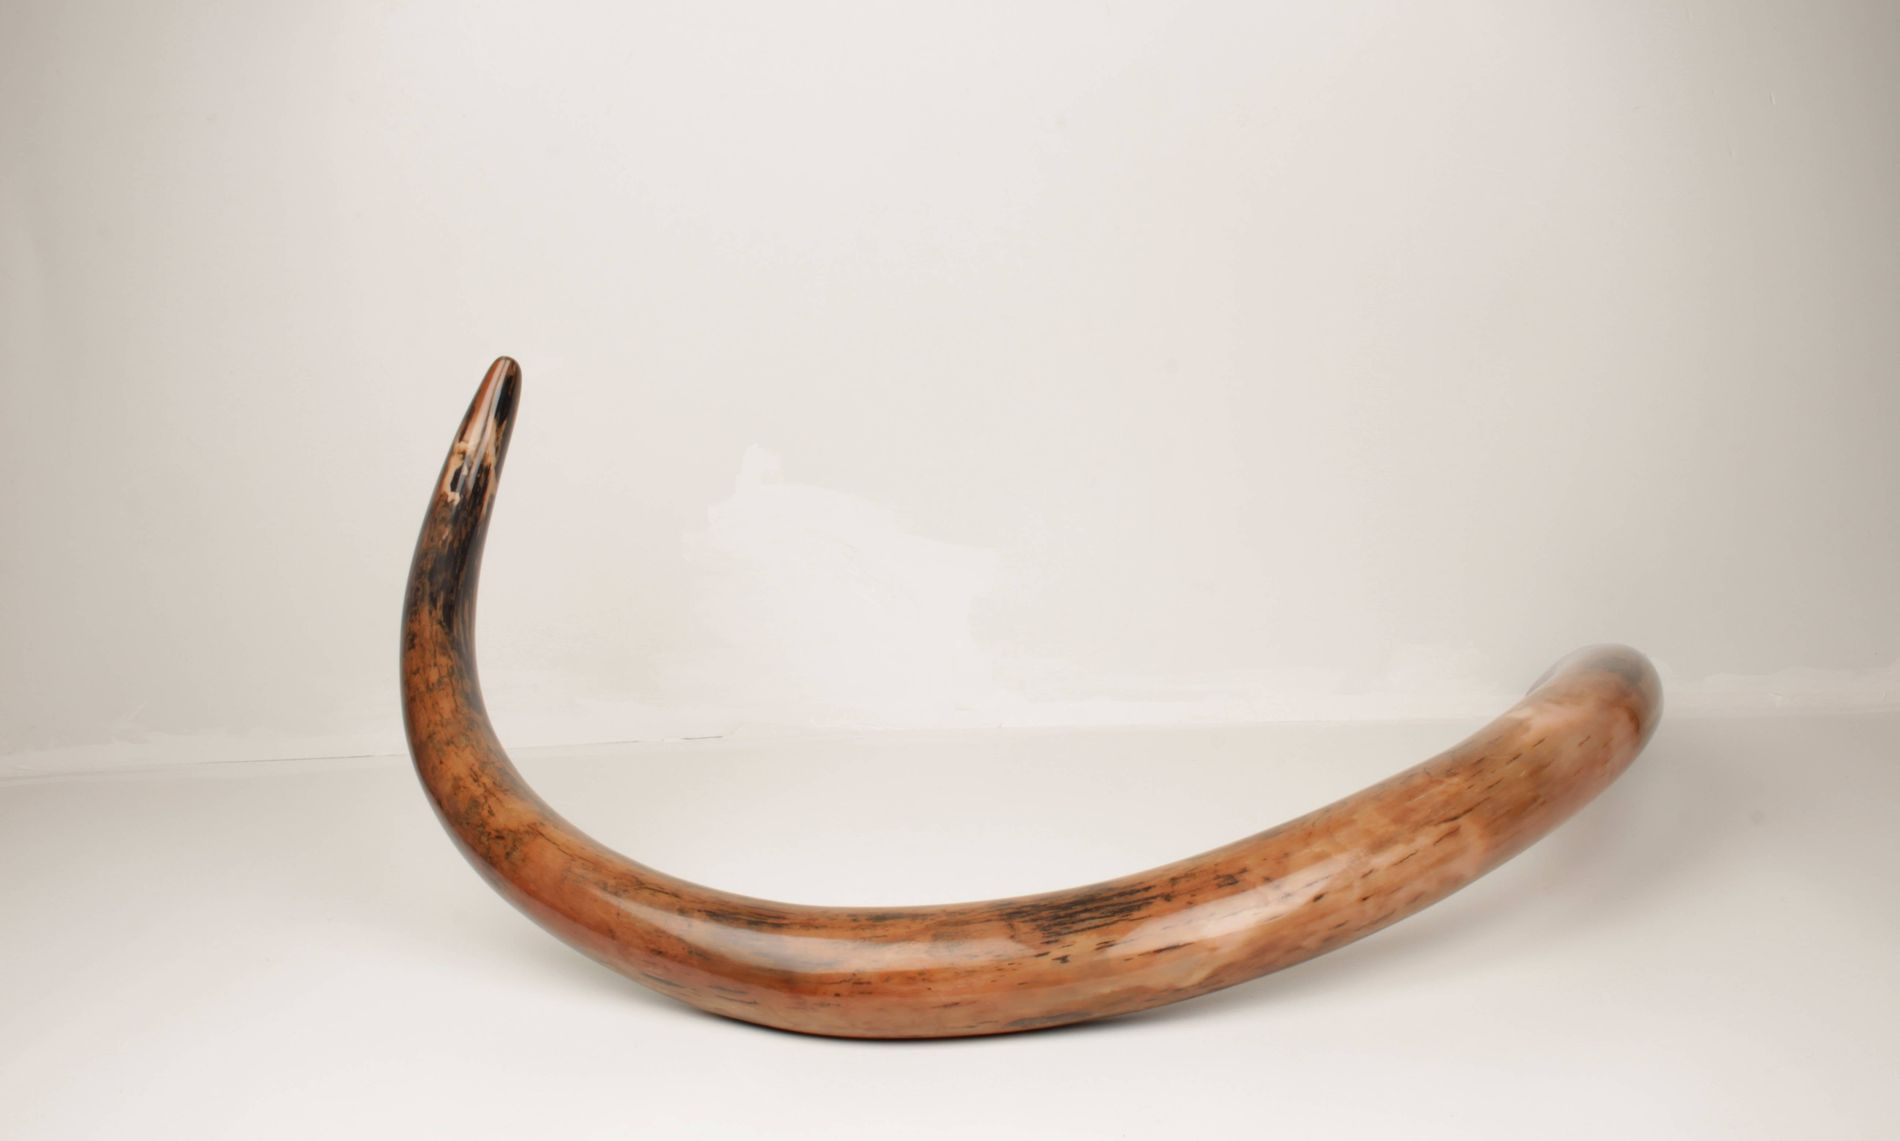 Restored woolly mammoth tusk 33.7 kg